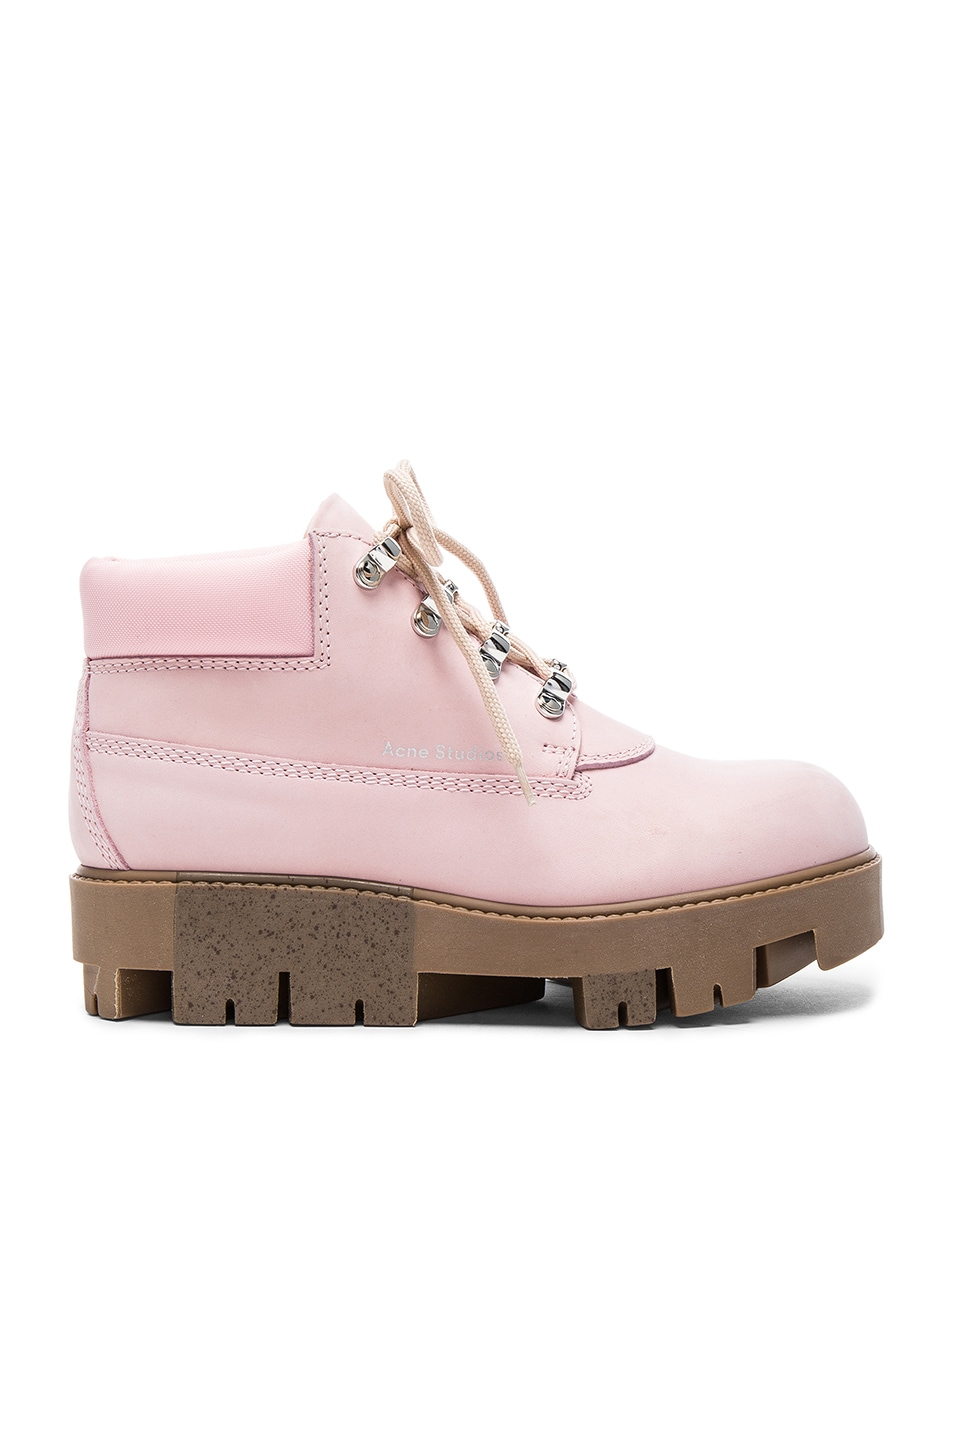 Image 1 of Acne Studios Leather Tinne Boots in Pink